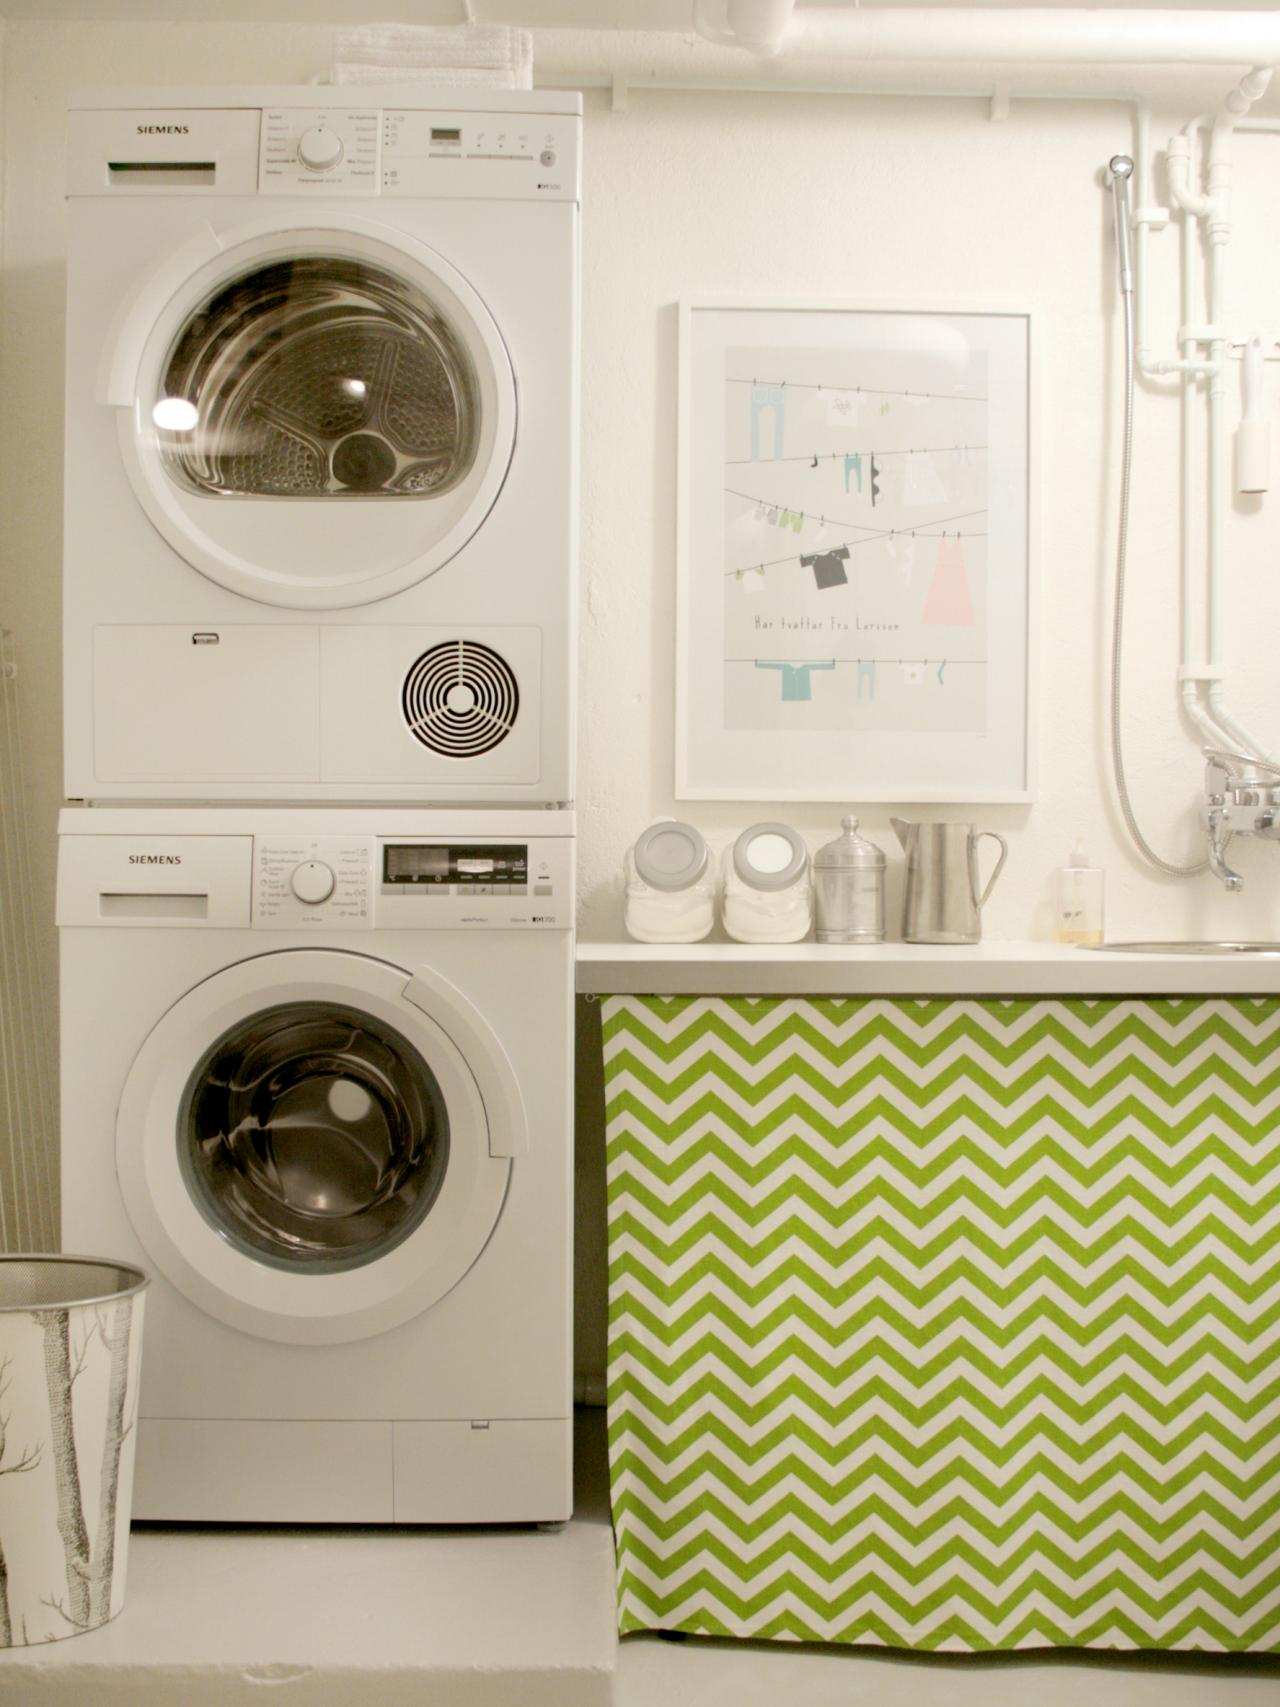 10 chic laundry room decorating ideas interior design styles and color schemes for home - Laundry room designs small spaces set ...